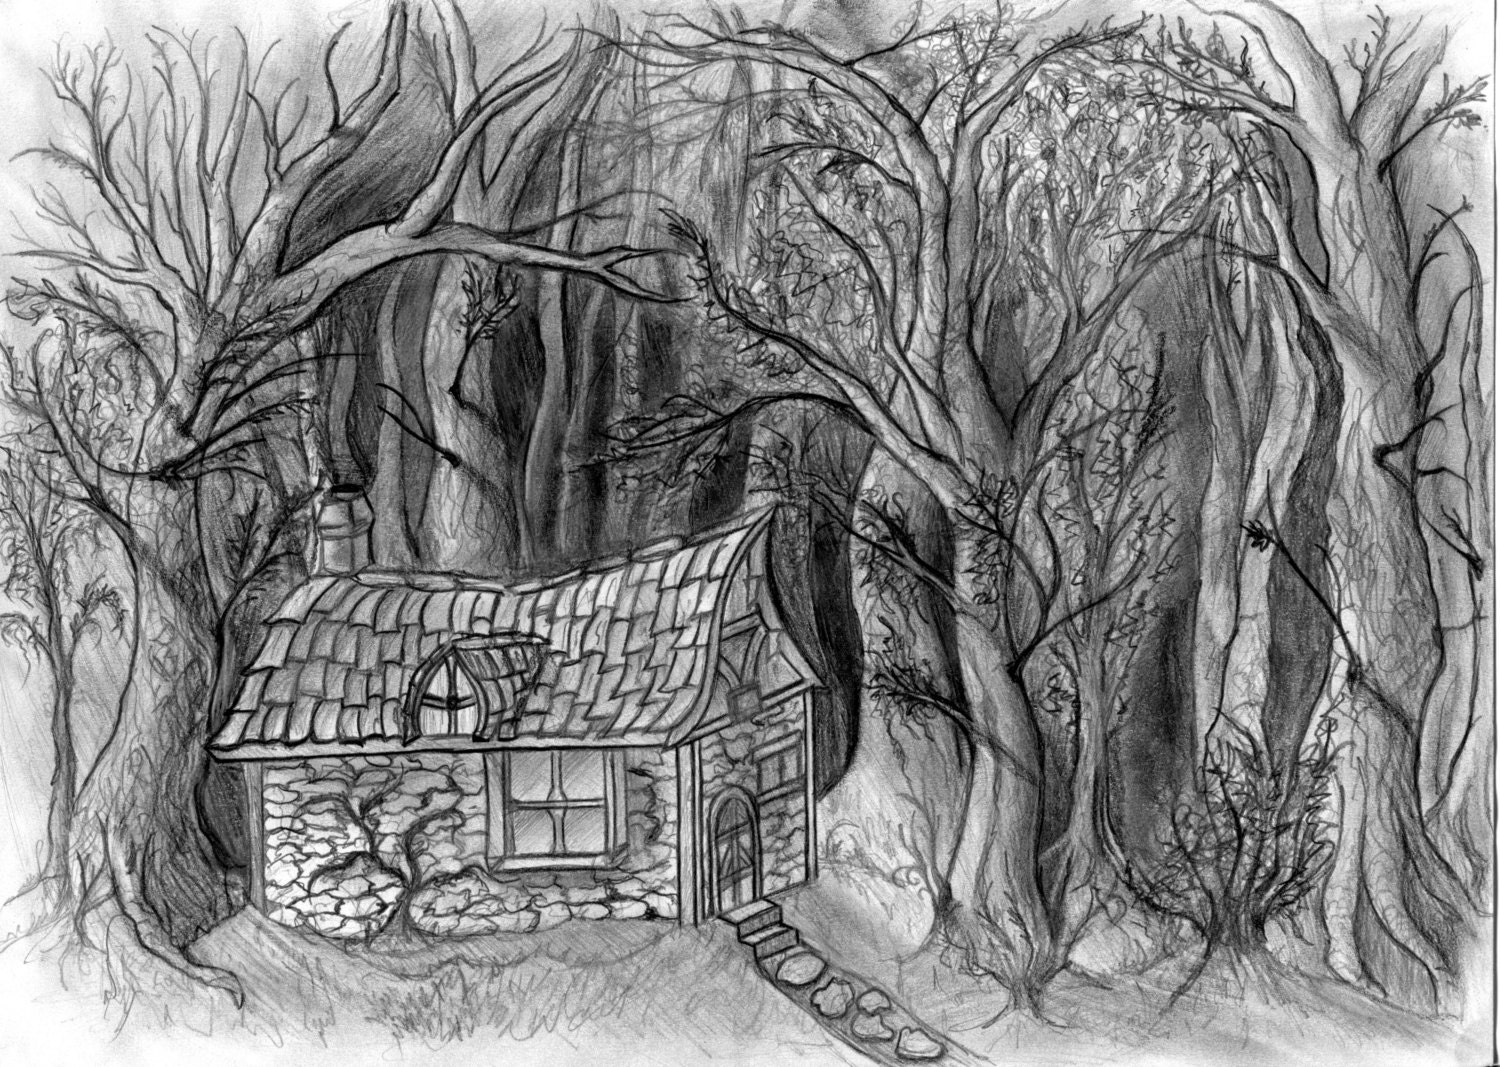 how to draw a house in a froest